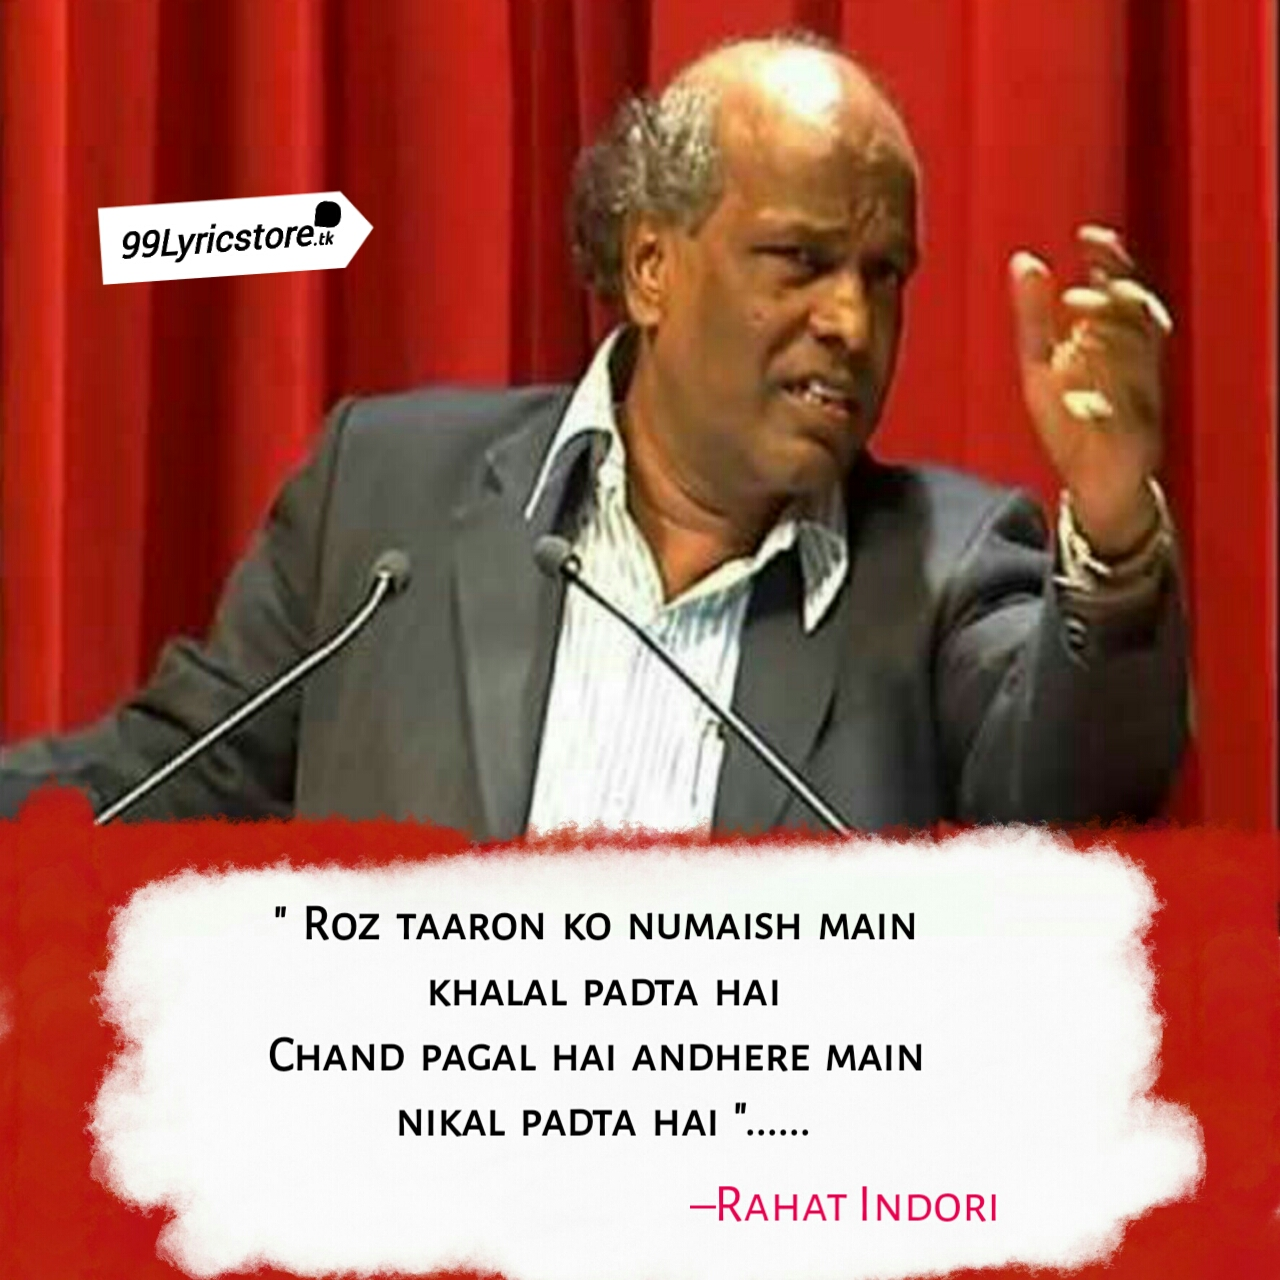 Roz Taaron Ko Numaish Main Khalal Padta Hai – Poetry | Rahat Indori, Ghazal Sangarh, Urdu Poetry Dhadkan Poetry, Taare poetry, Rahat Indori poetry in Hindi, रोज़ तारों को नुमाइश में खलल पड़ता हैं चाँद पागल हैं अंधेरे में निकल पड़ता हैं, Roz taaron ko numaish main khalal padta hai, Rahat Indori. Rahat Indori All Quotes, Happy Quotes, Poem Quotes, True Quotes, Quotable Quotes, rahat indori ghazals, rahat indori kavita, rahat indori sad shayari